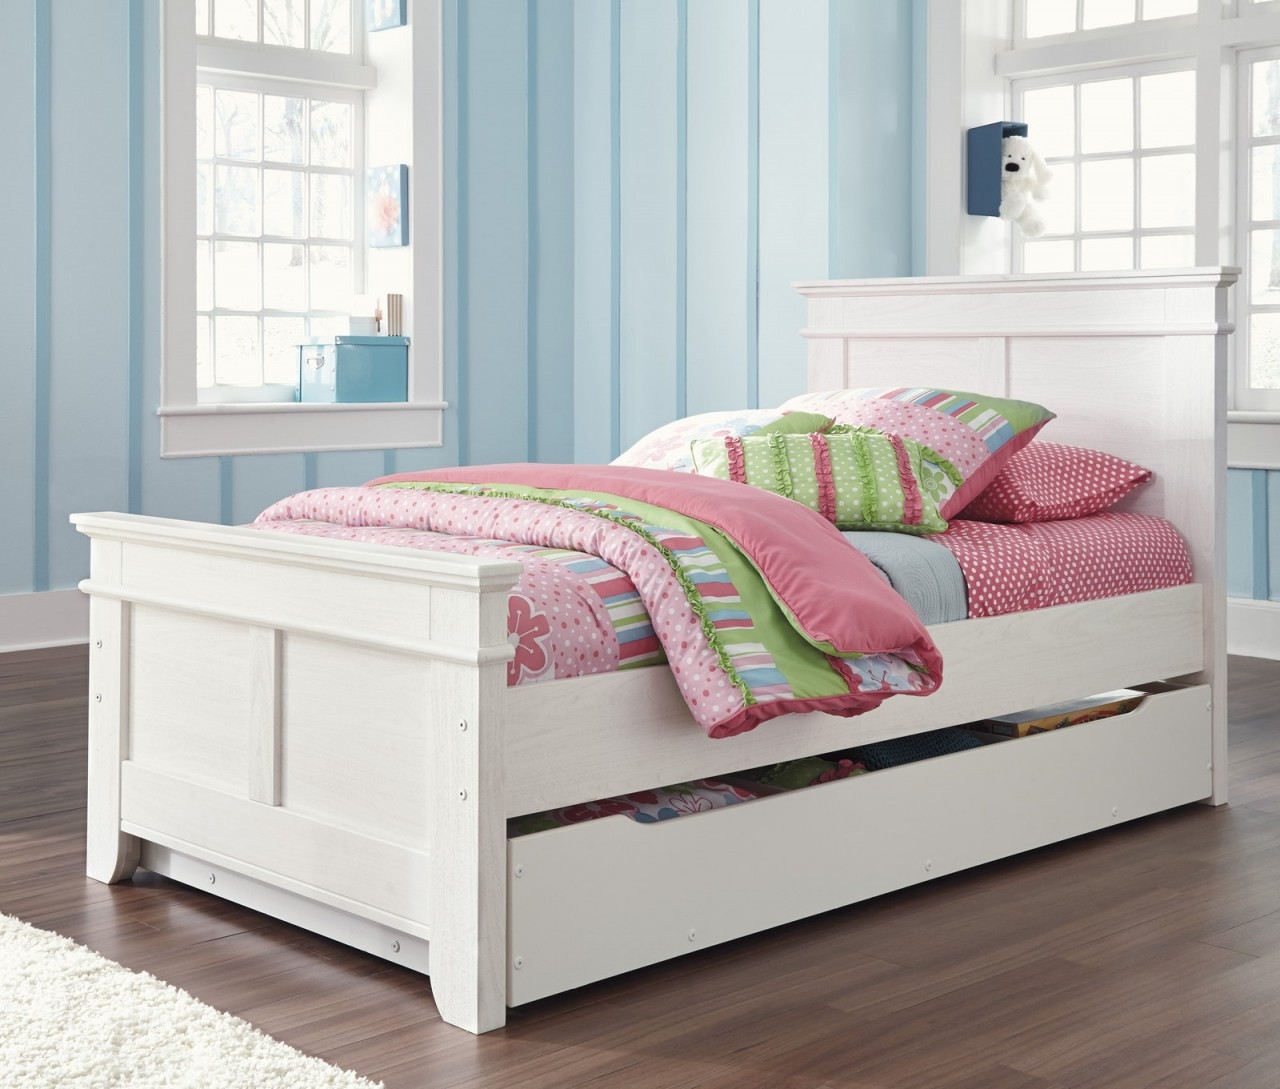 Image of: Twin Bed with Trundle Design